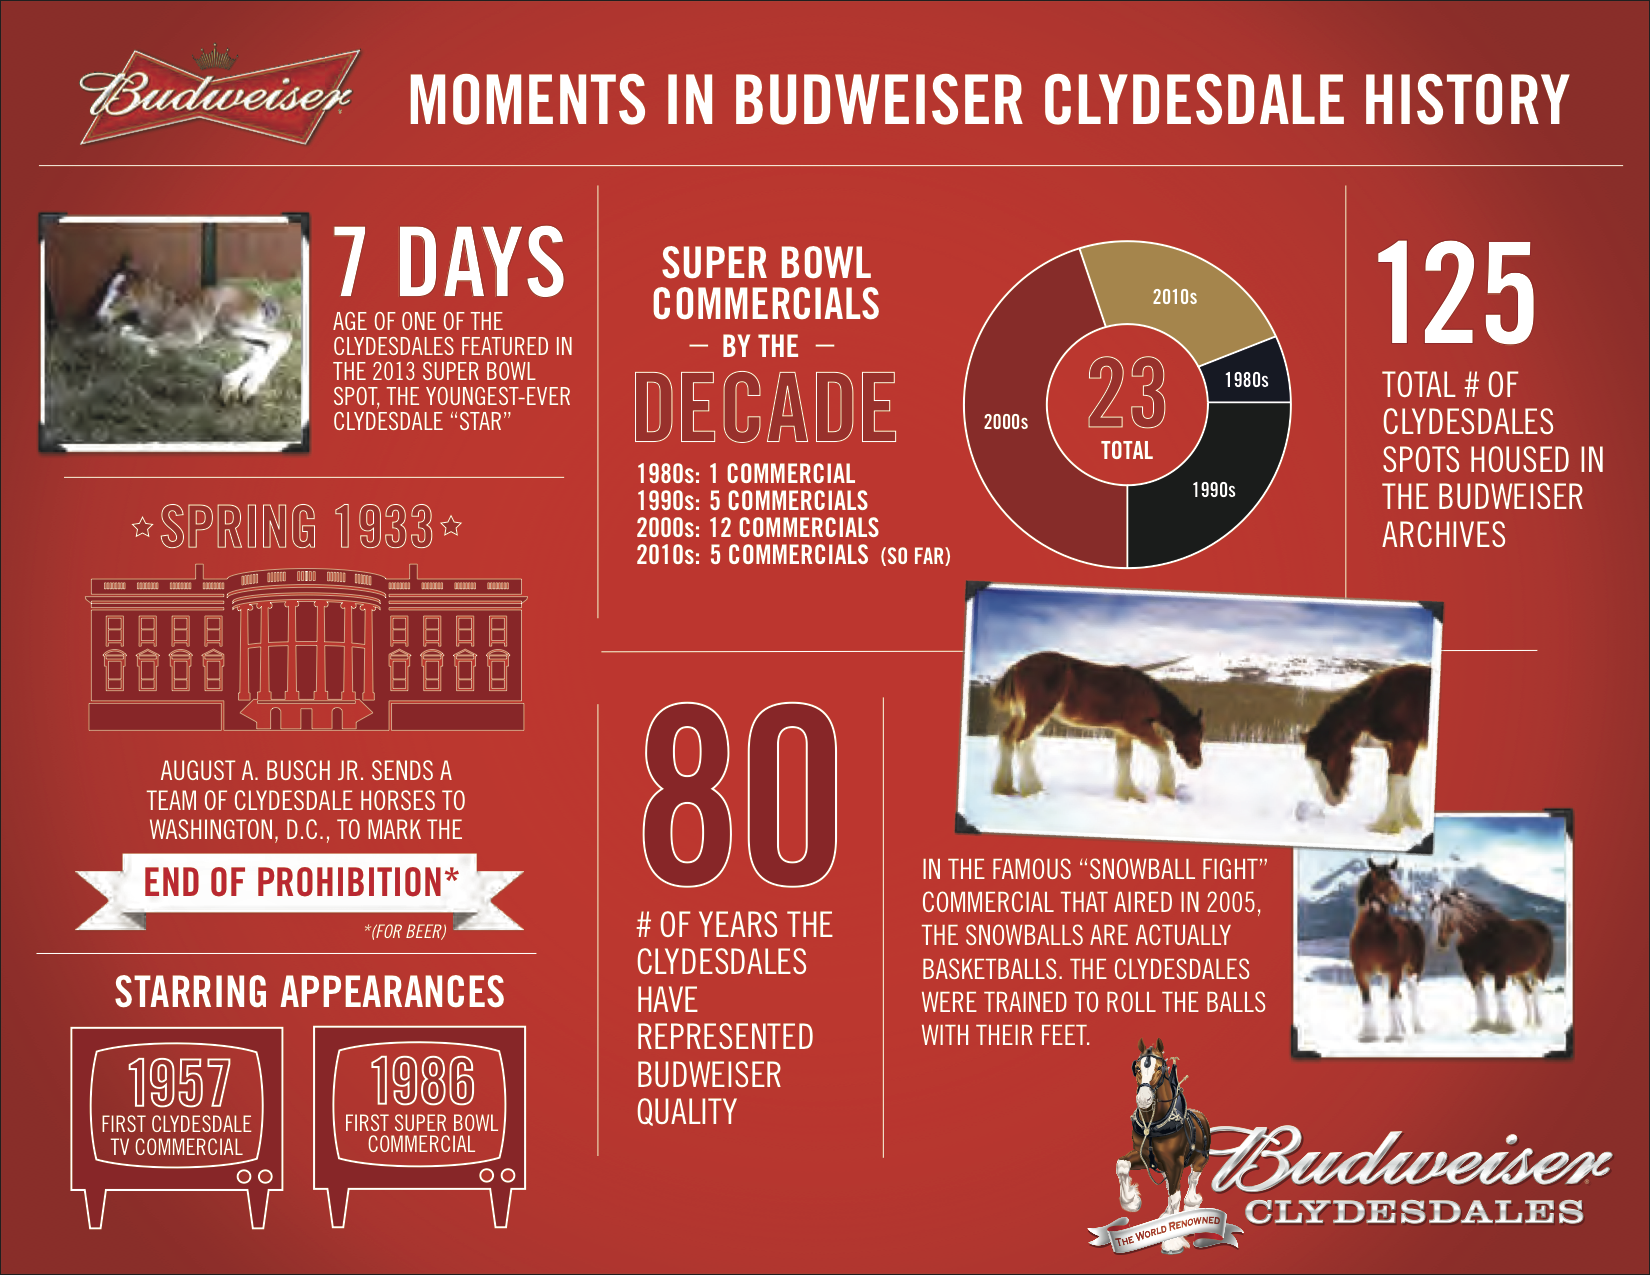 Budweiser Clydesdale infographic history facts